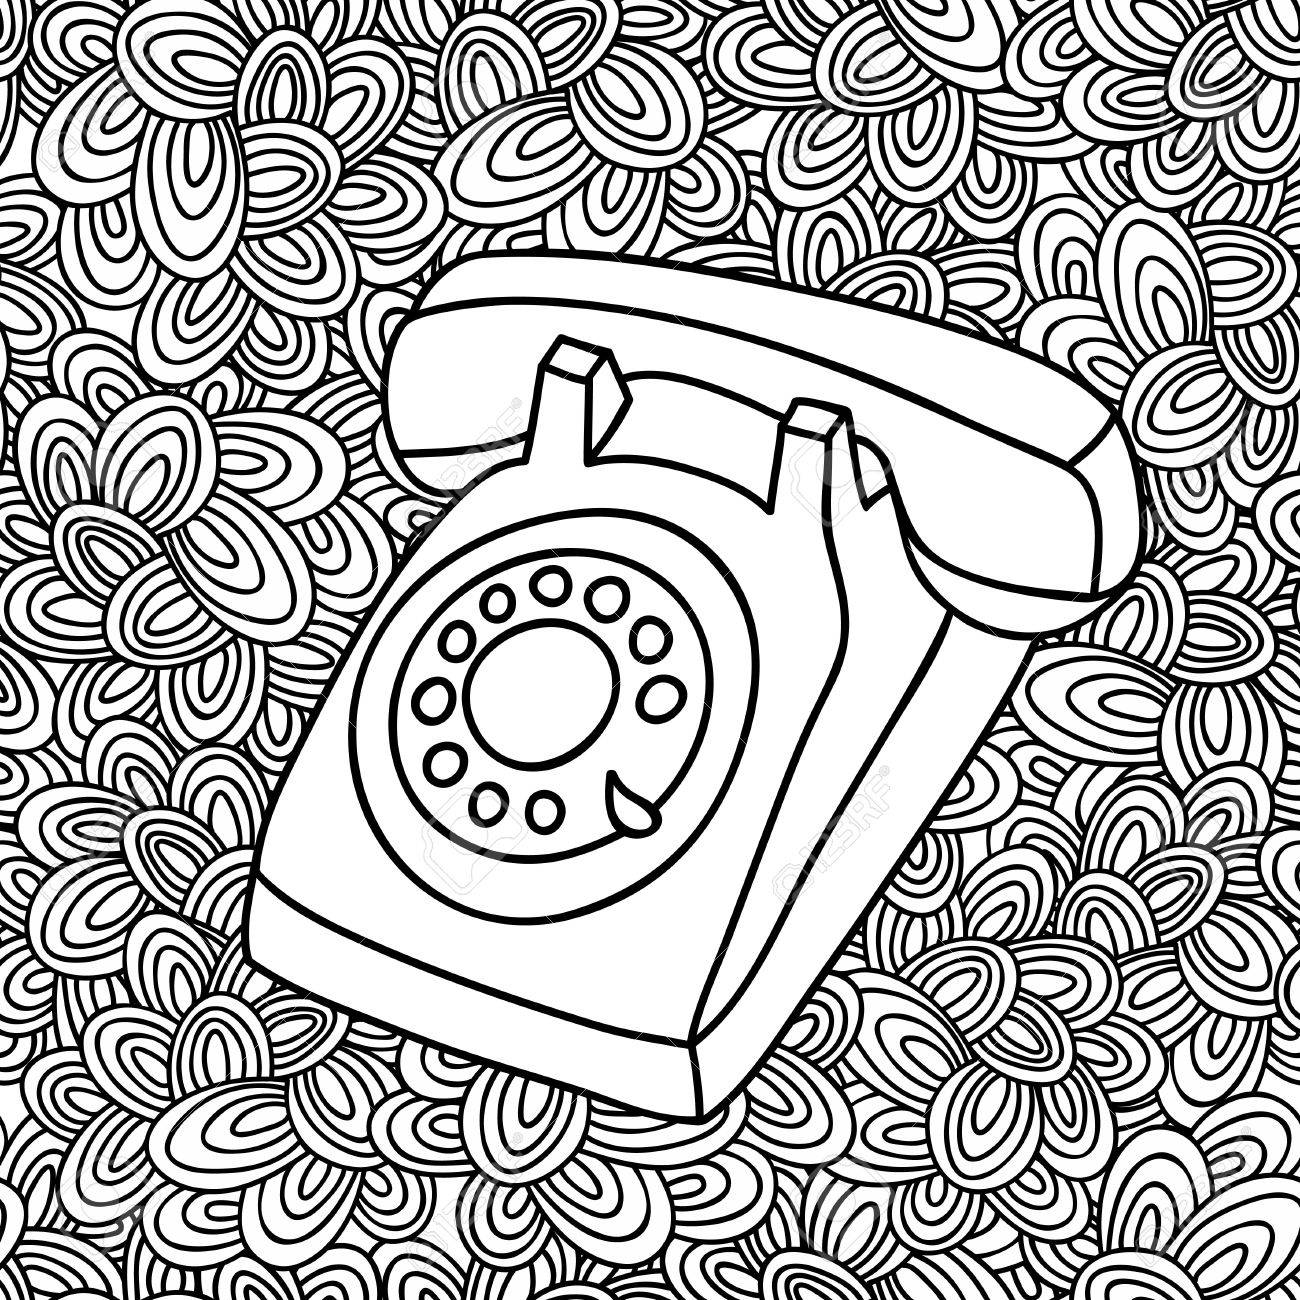 Hand Drawing Old Phone Vintage Telephone Illustration In Vector On The Artistic Background Stock